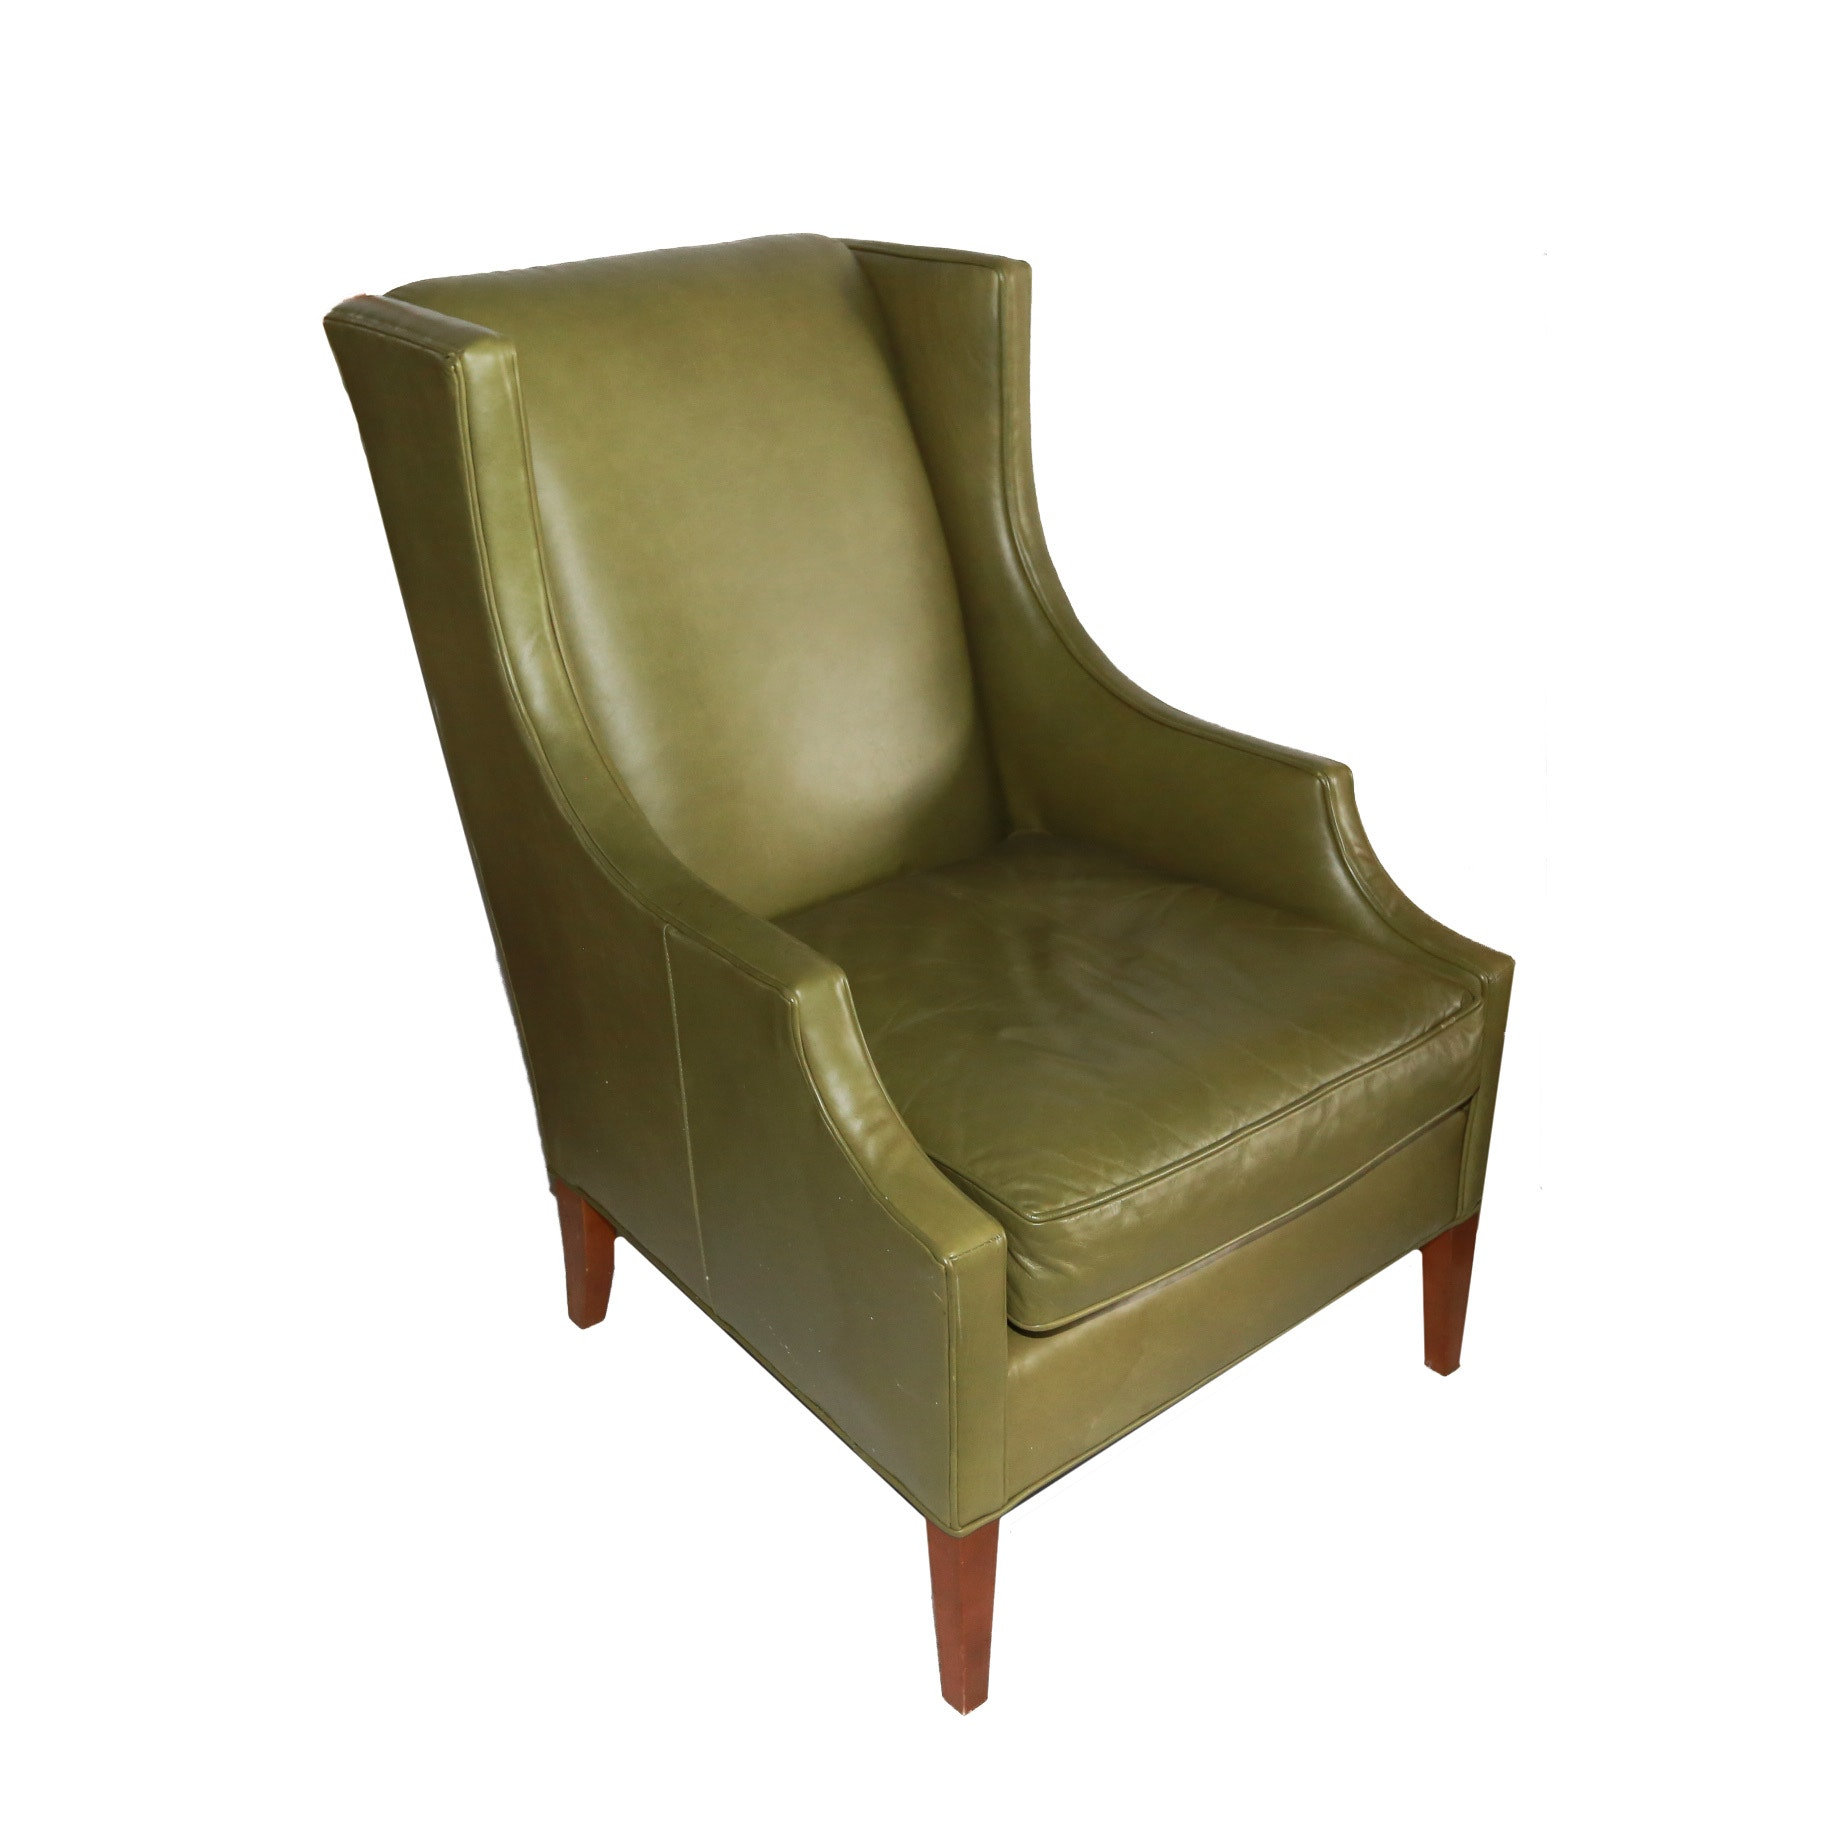 Mitchell Gold + Bob Williams Olive Green Leather Armchair